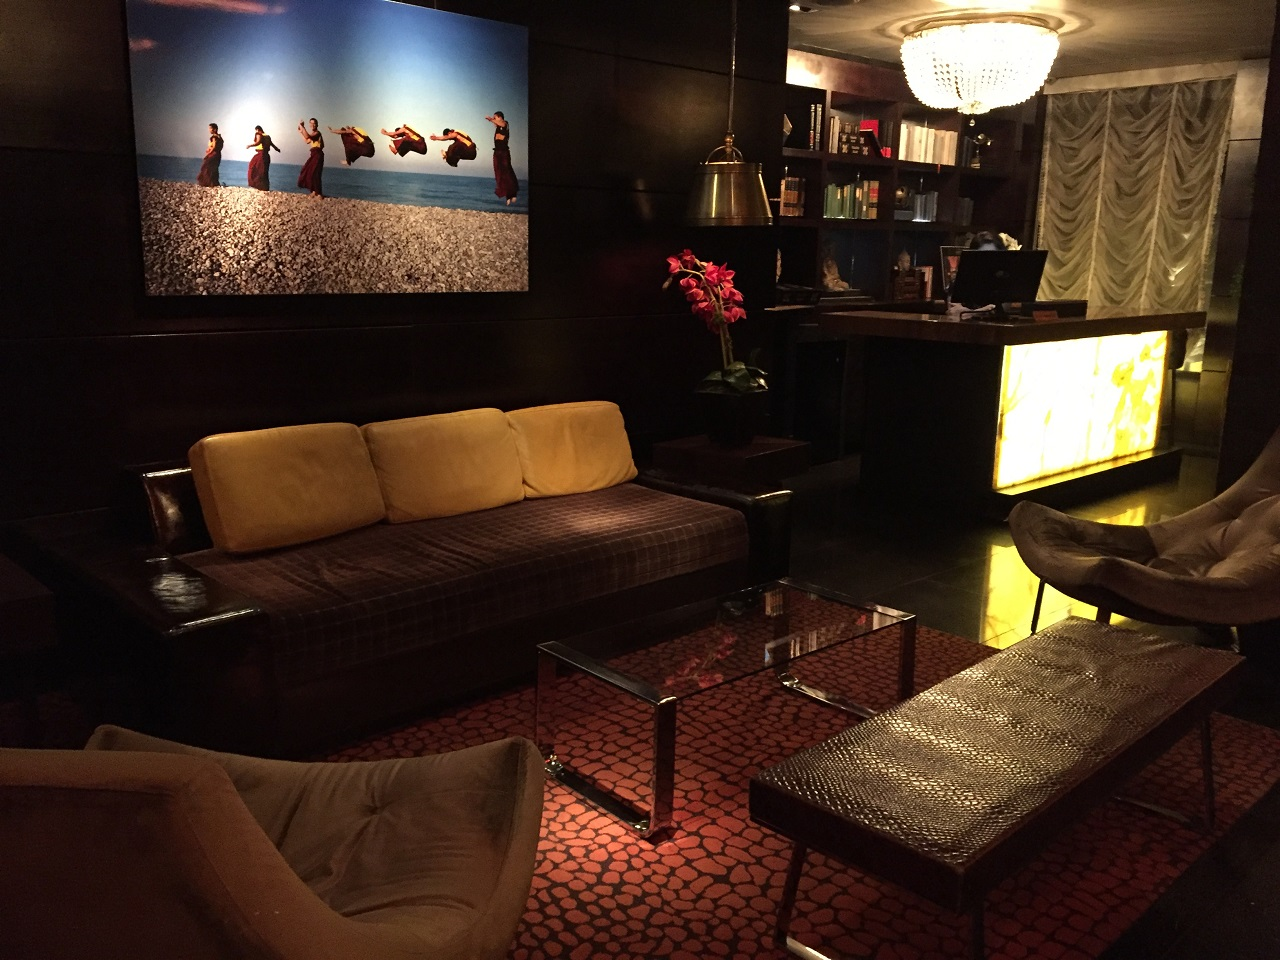 A New York City Boutique Hotel for $100!? Hotel Tonight Deal